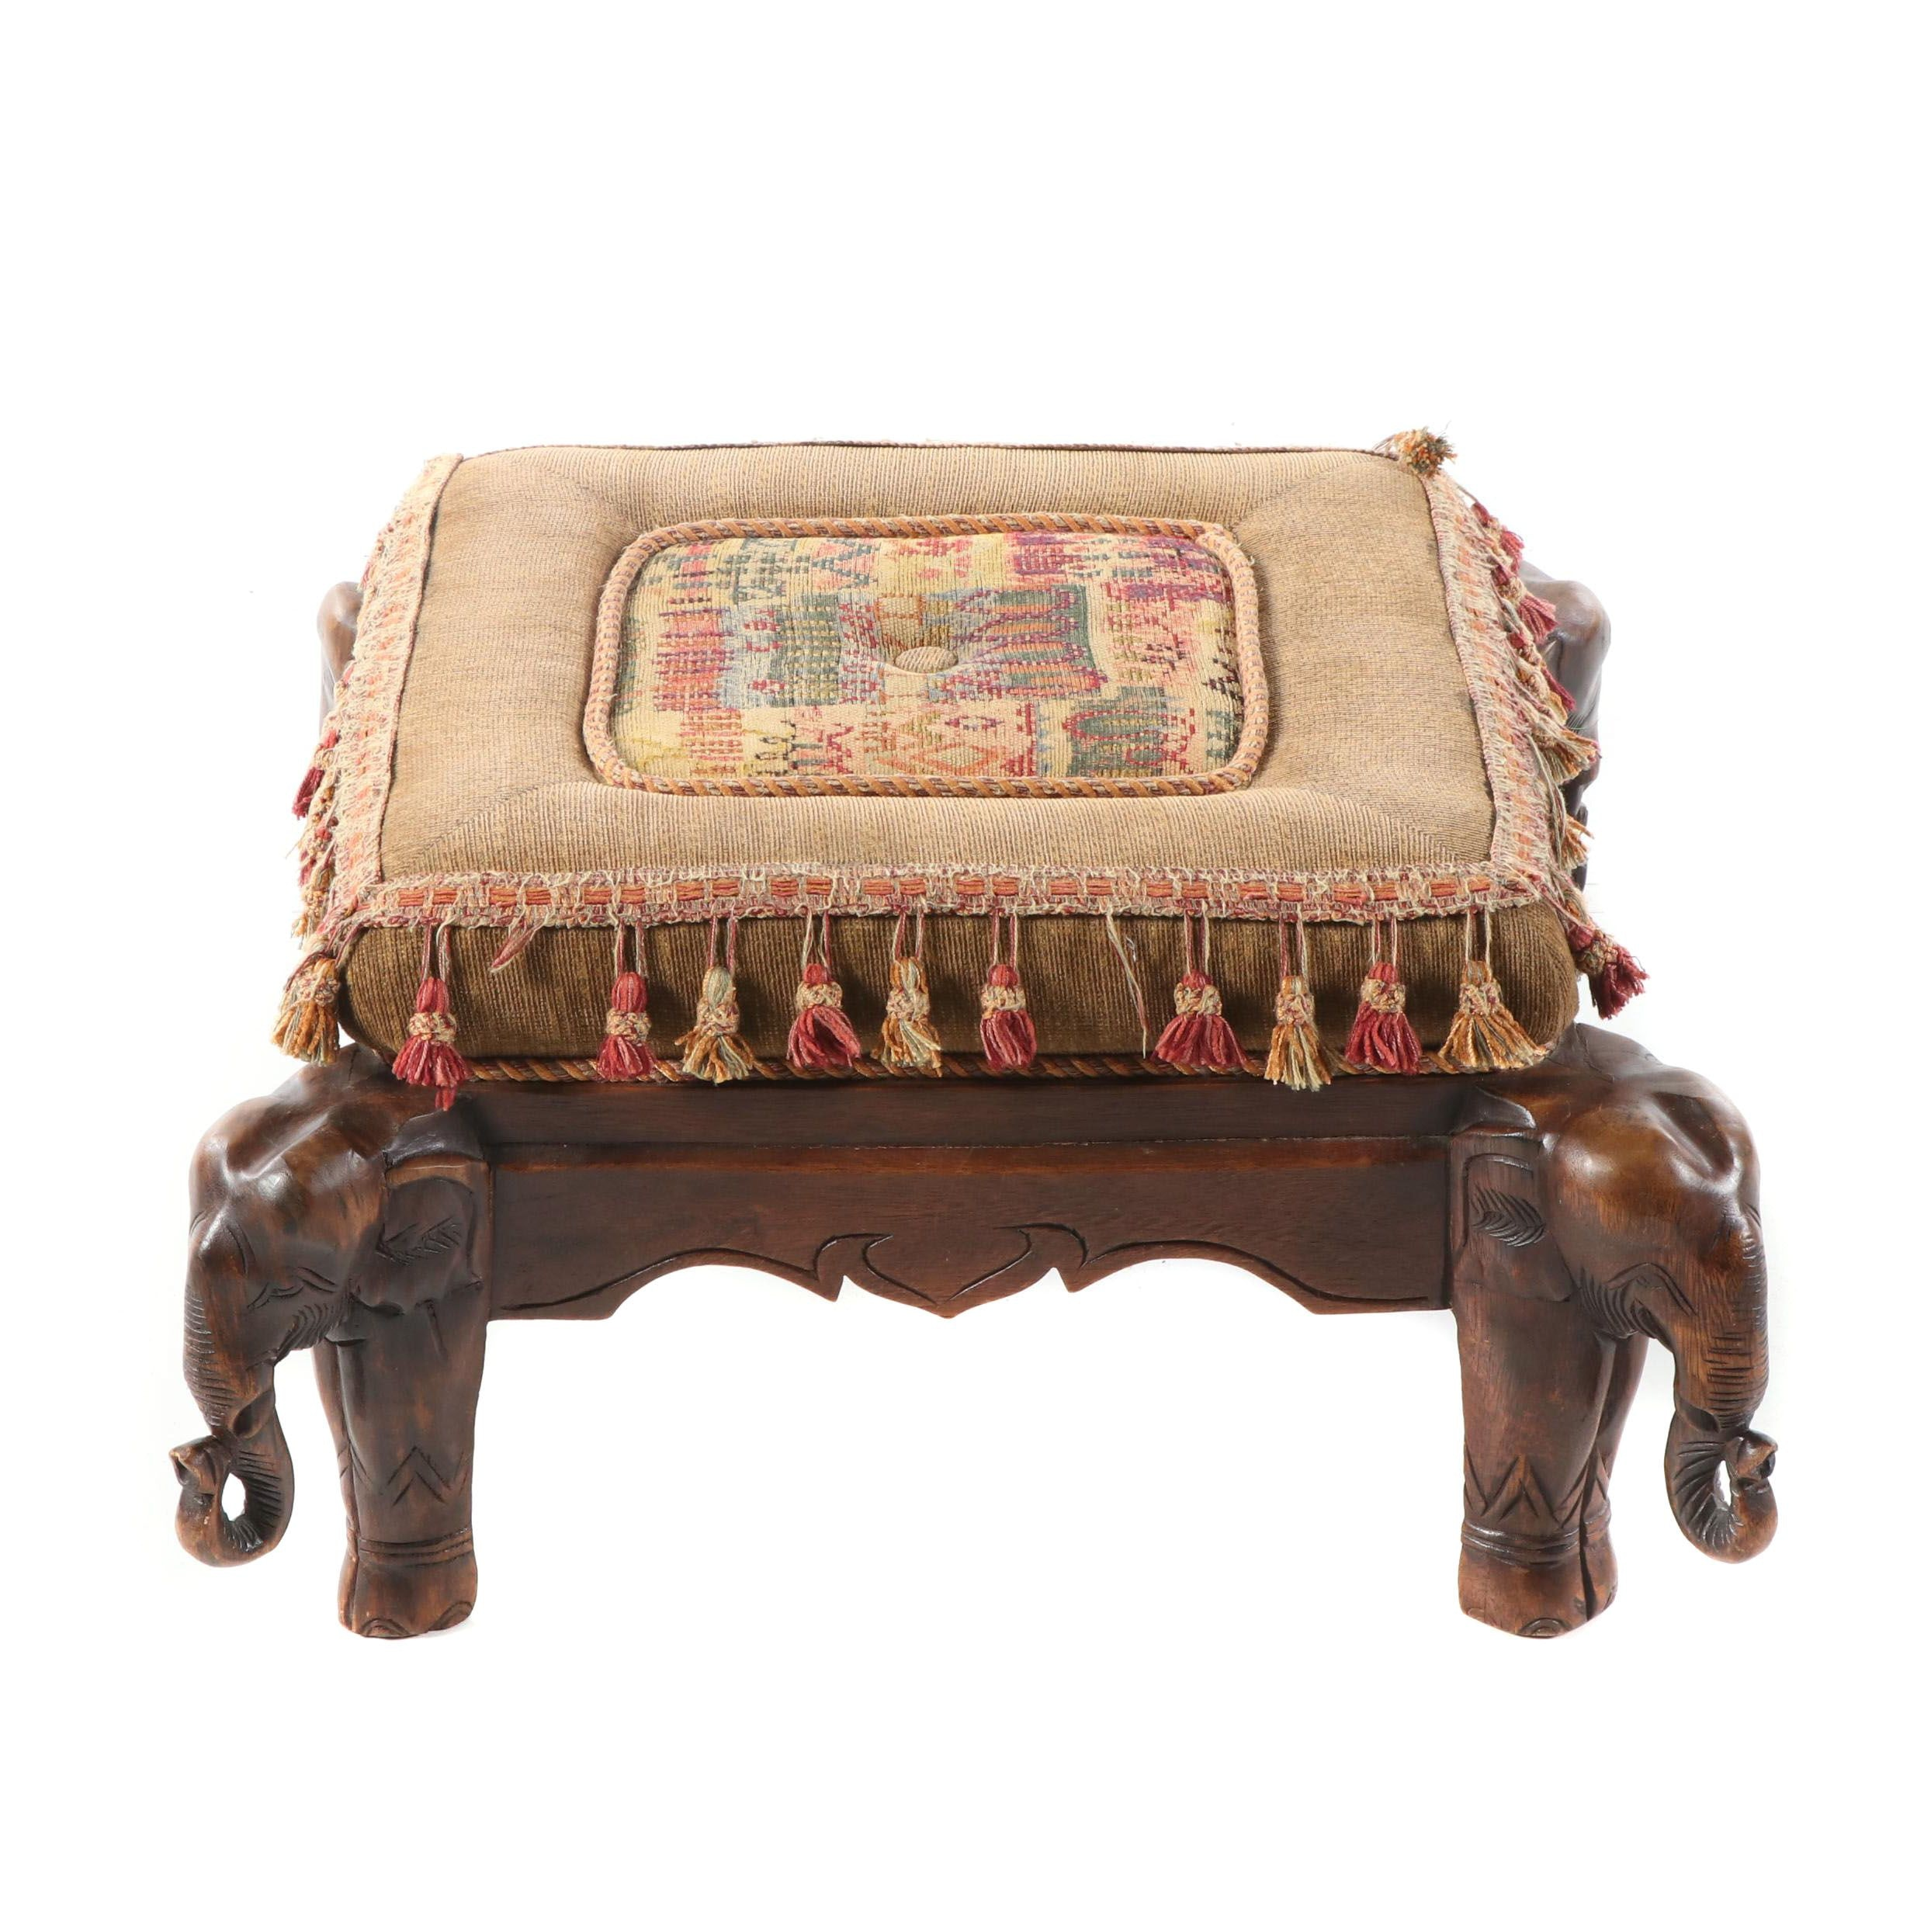 Horchow Elephant's Head Motif Upholstered Oak Ottoman, 20th Century